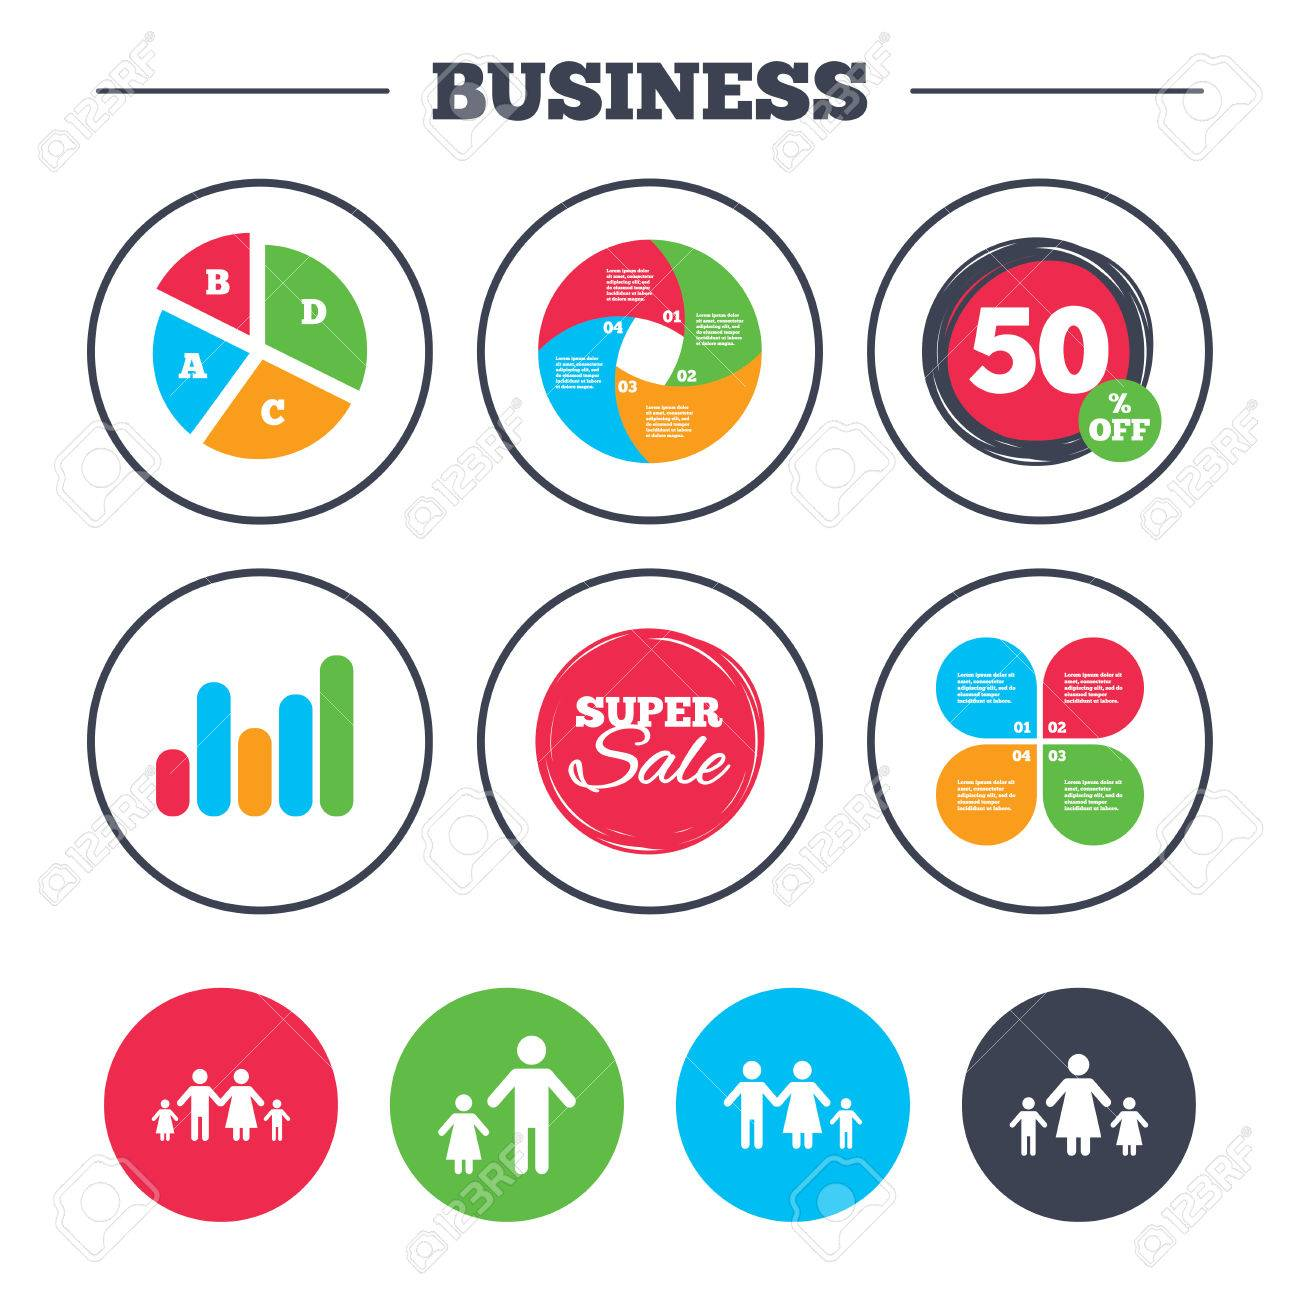 business pie chart. growth graph. family with two children icon